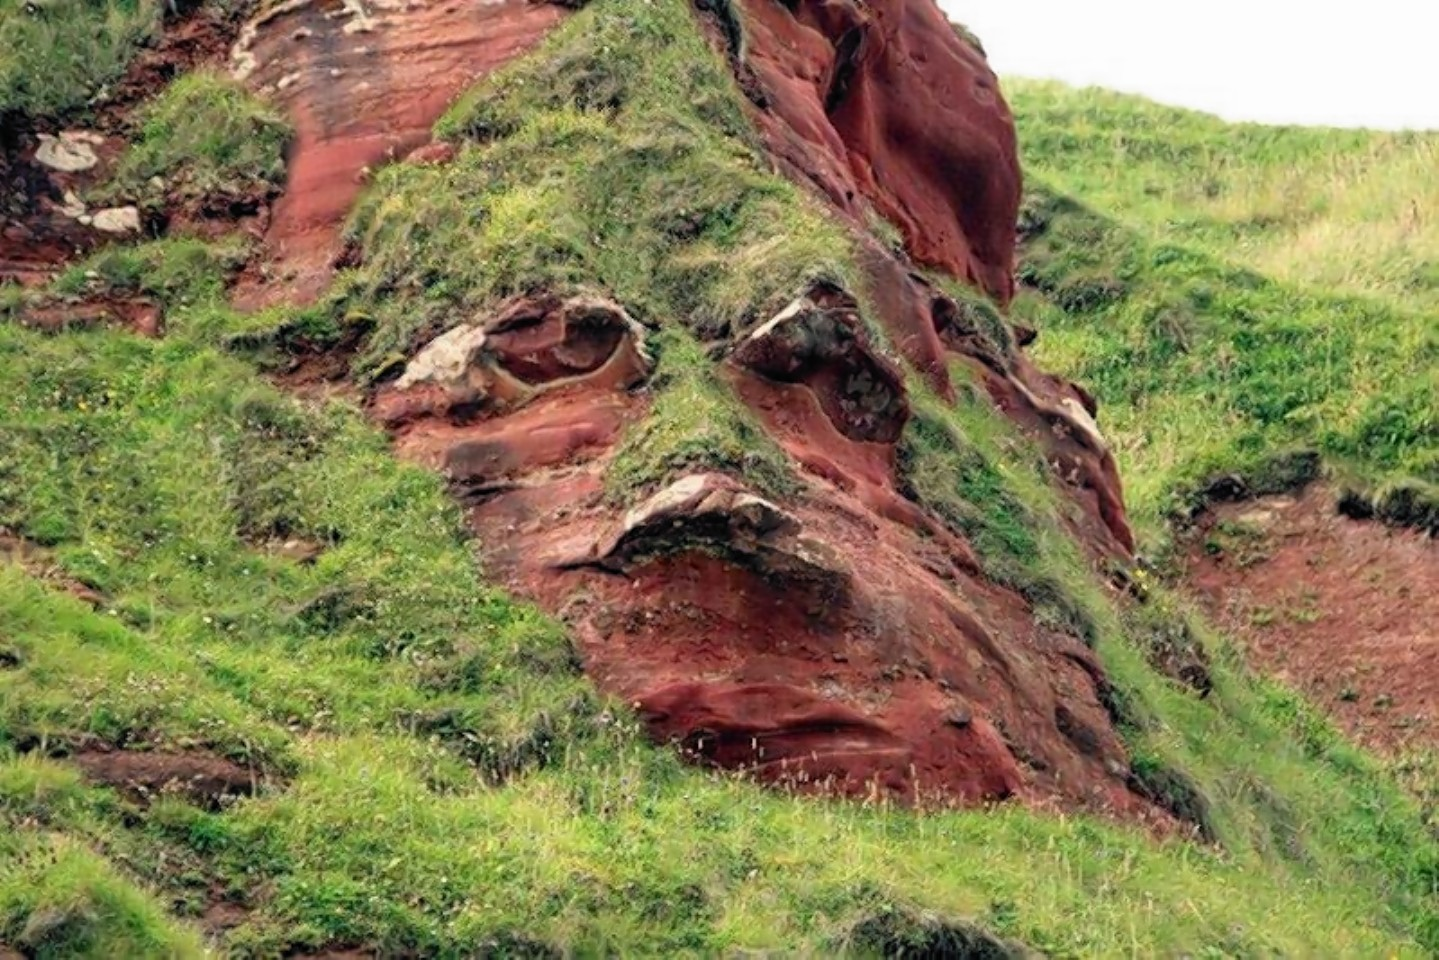 Can you see Alex Salmond's face in the cliff?